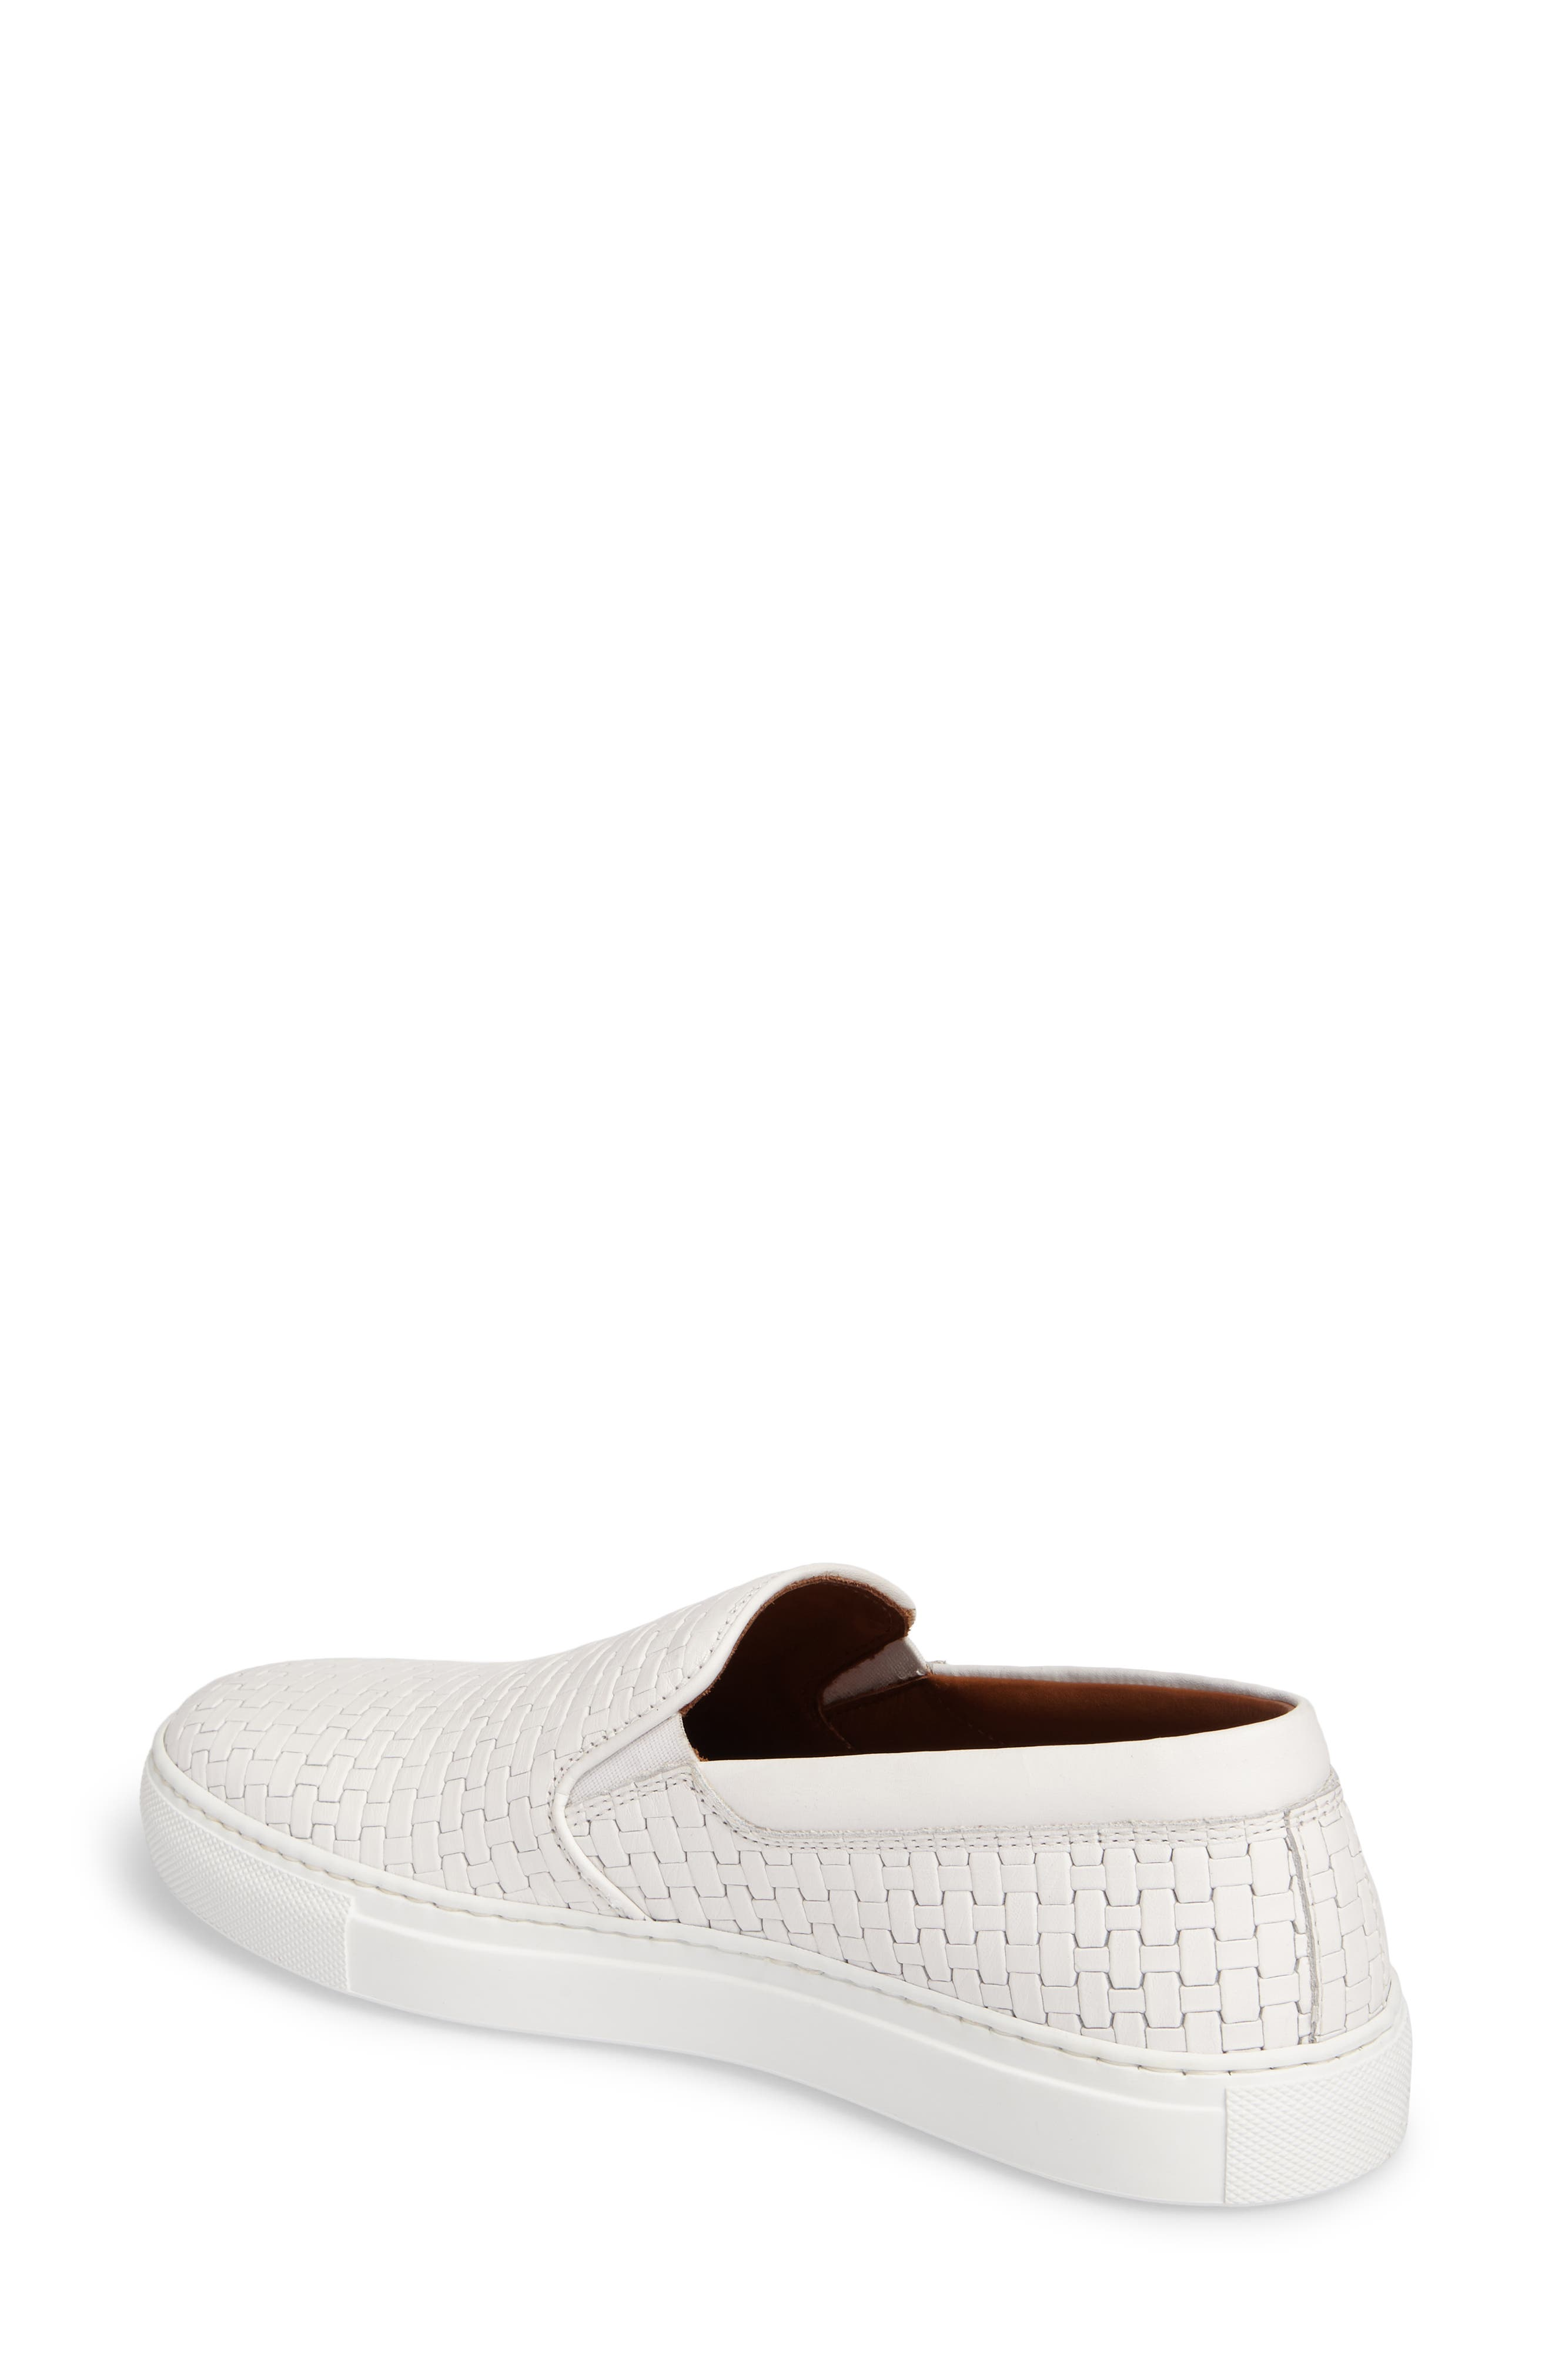 AQUATALIA, Ashlynn Embossed Slip-On Sneaker, Alternate thumbnail 2, color, WHITE